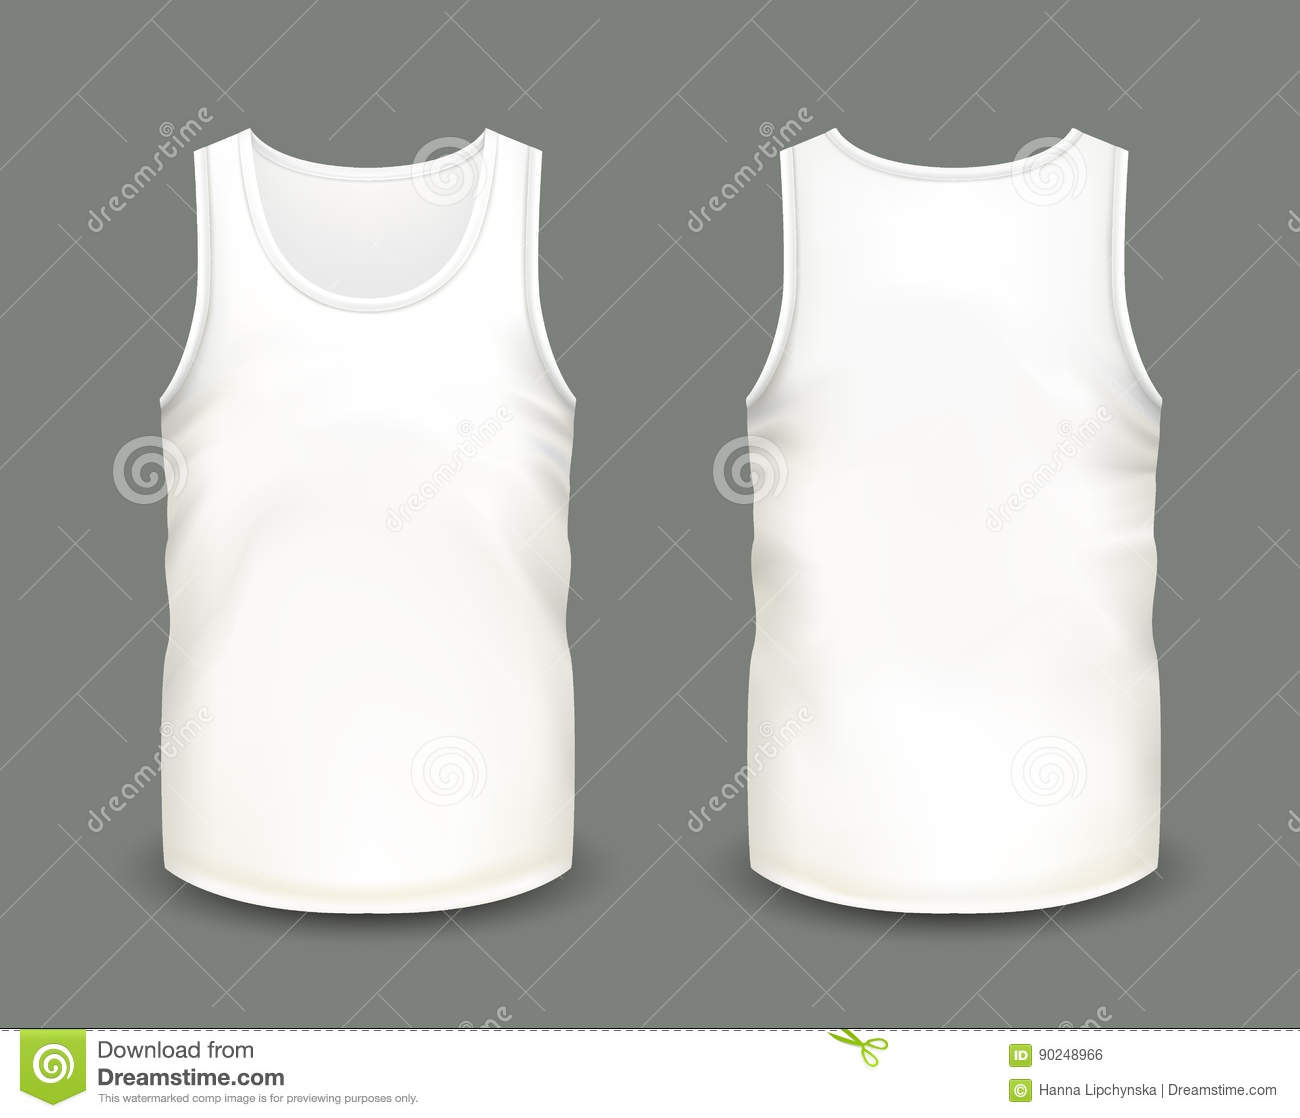 Mens White Sleeveless Tank In Front And Back Views Vector Illustration With Realistic